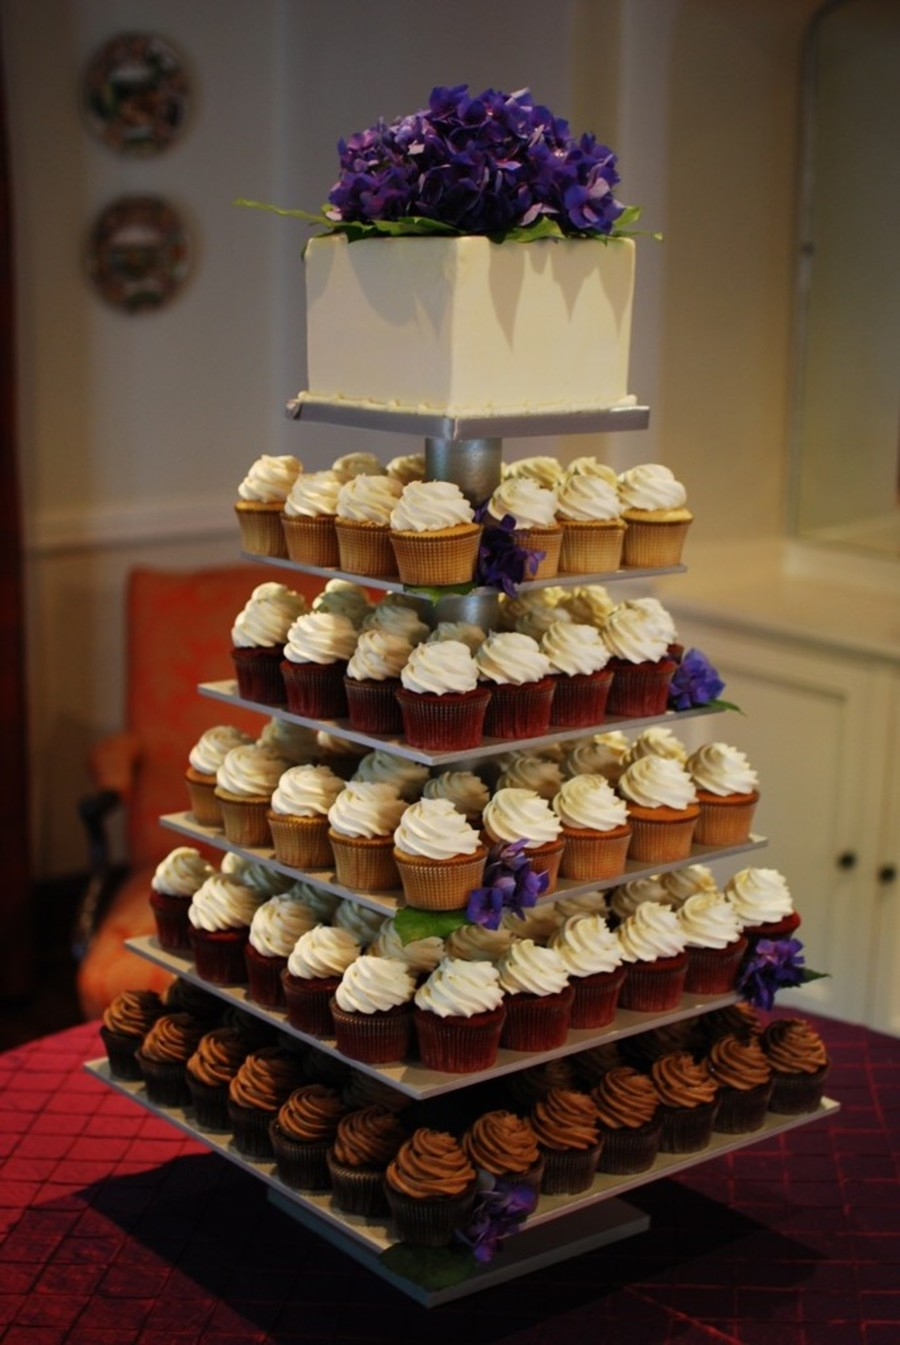 Silver 6 Tier Cupcake Stand Cake On Central